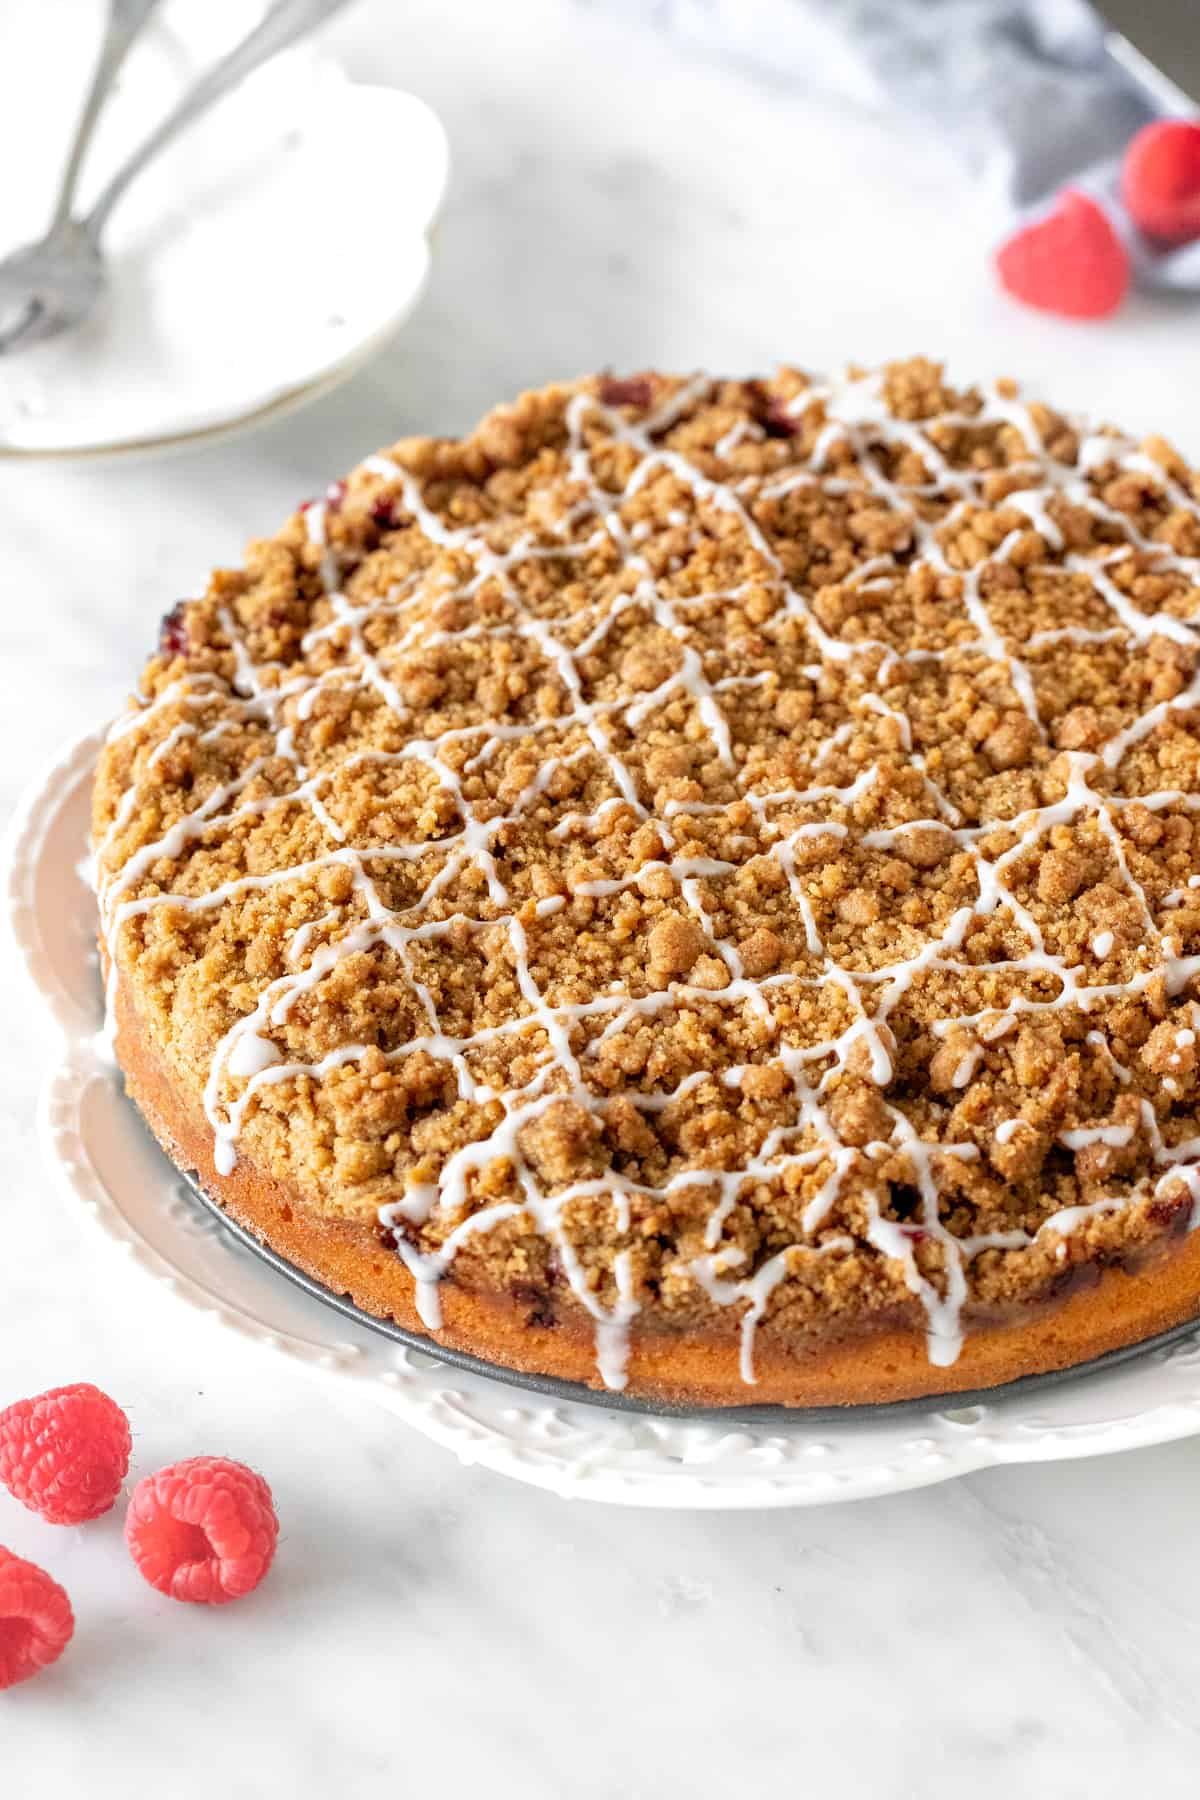 9-inch round coffee cake with drizzle of glaze on top.